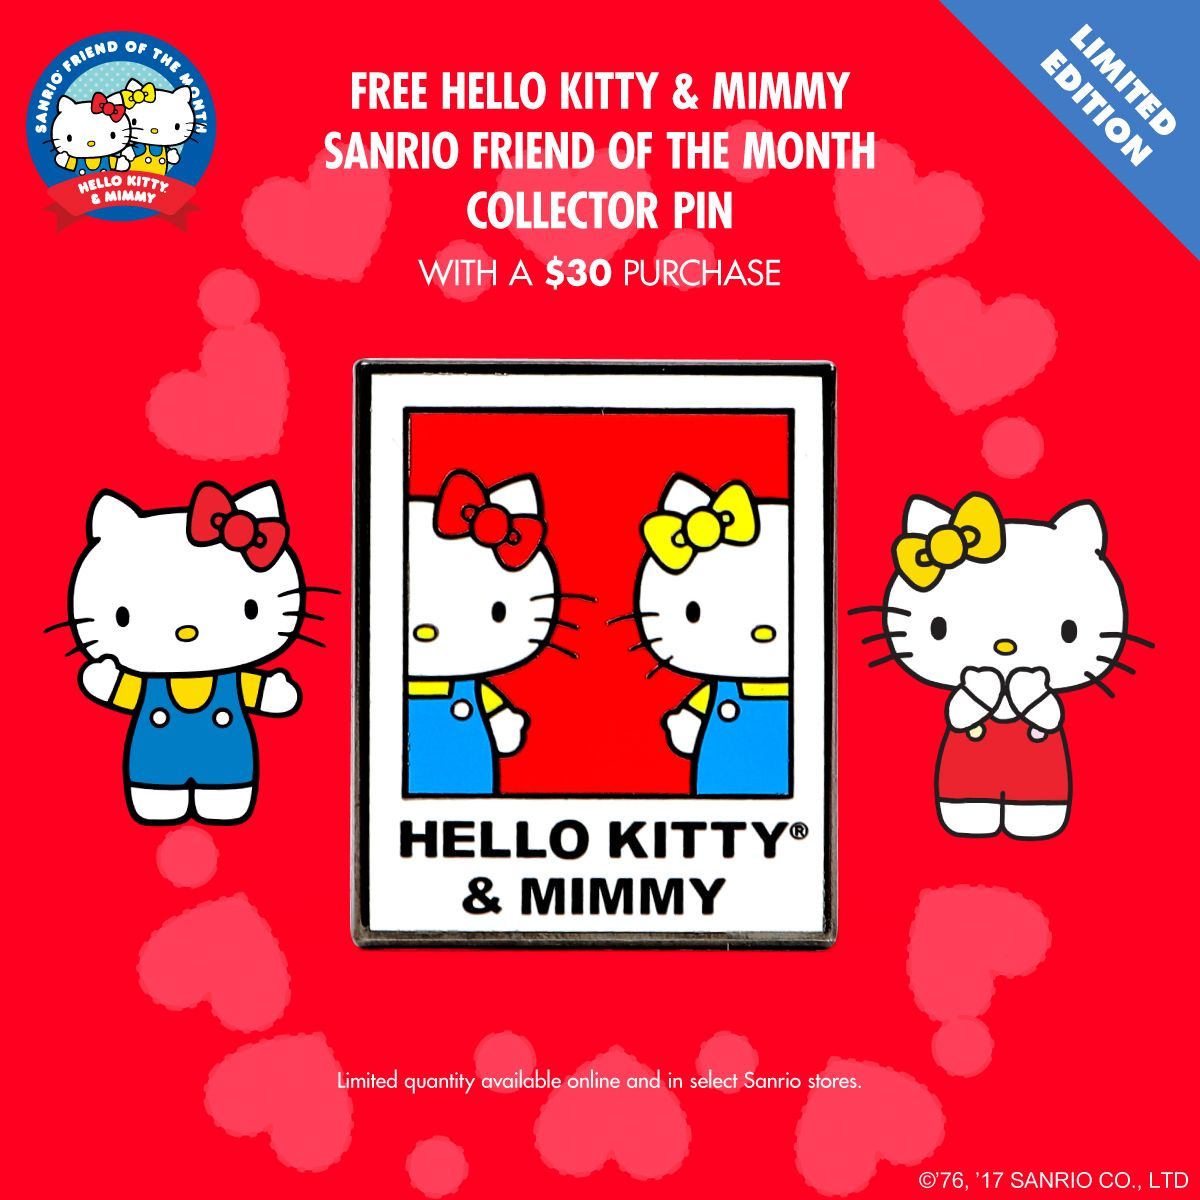 1dc980e3a It's Hello Kitty & Mimmy's birthday today! Get a free November Hello Kitty  & Mimmy Collector pin with any online purchase of $30 or more.